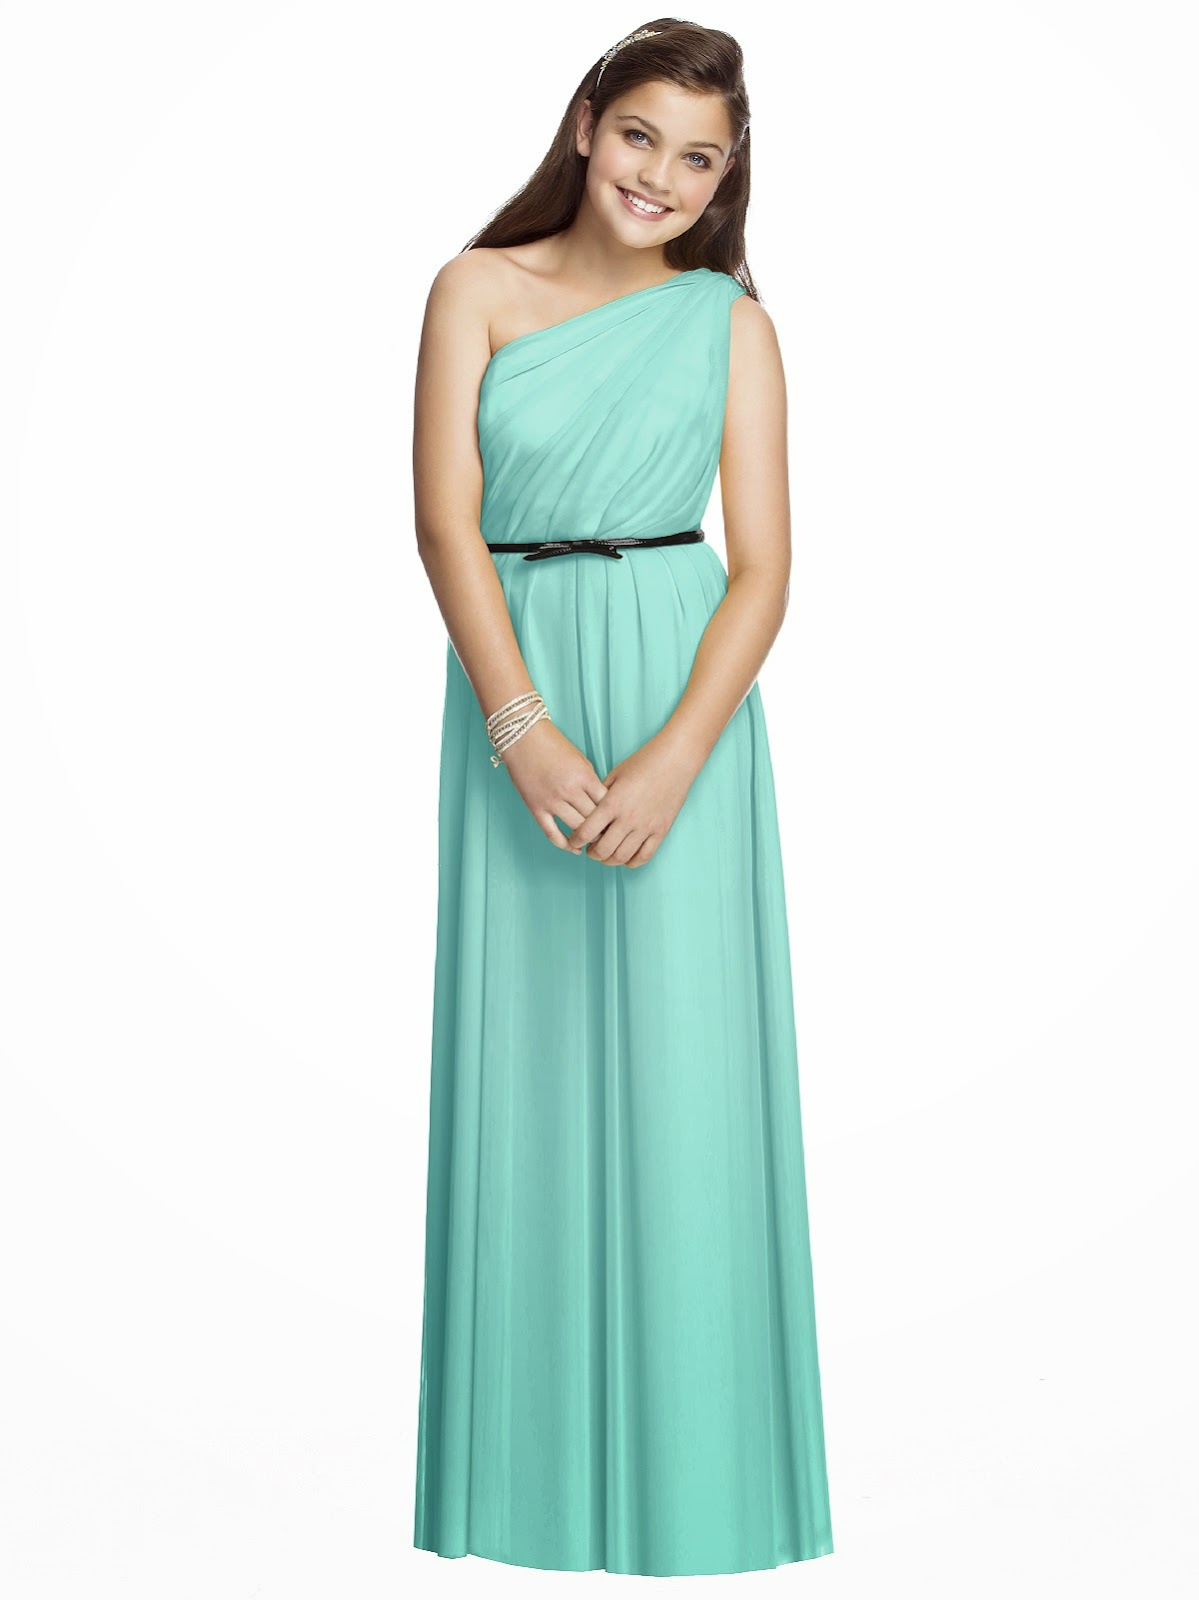 Junior bridesmaid dresses macys gown and dress gallery junior bridesmaid dresses macys image ombrellifo Images